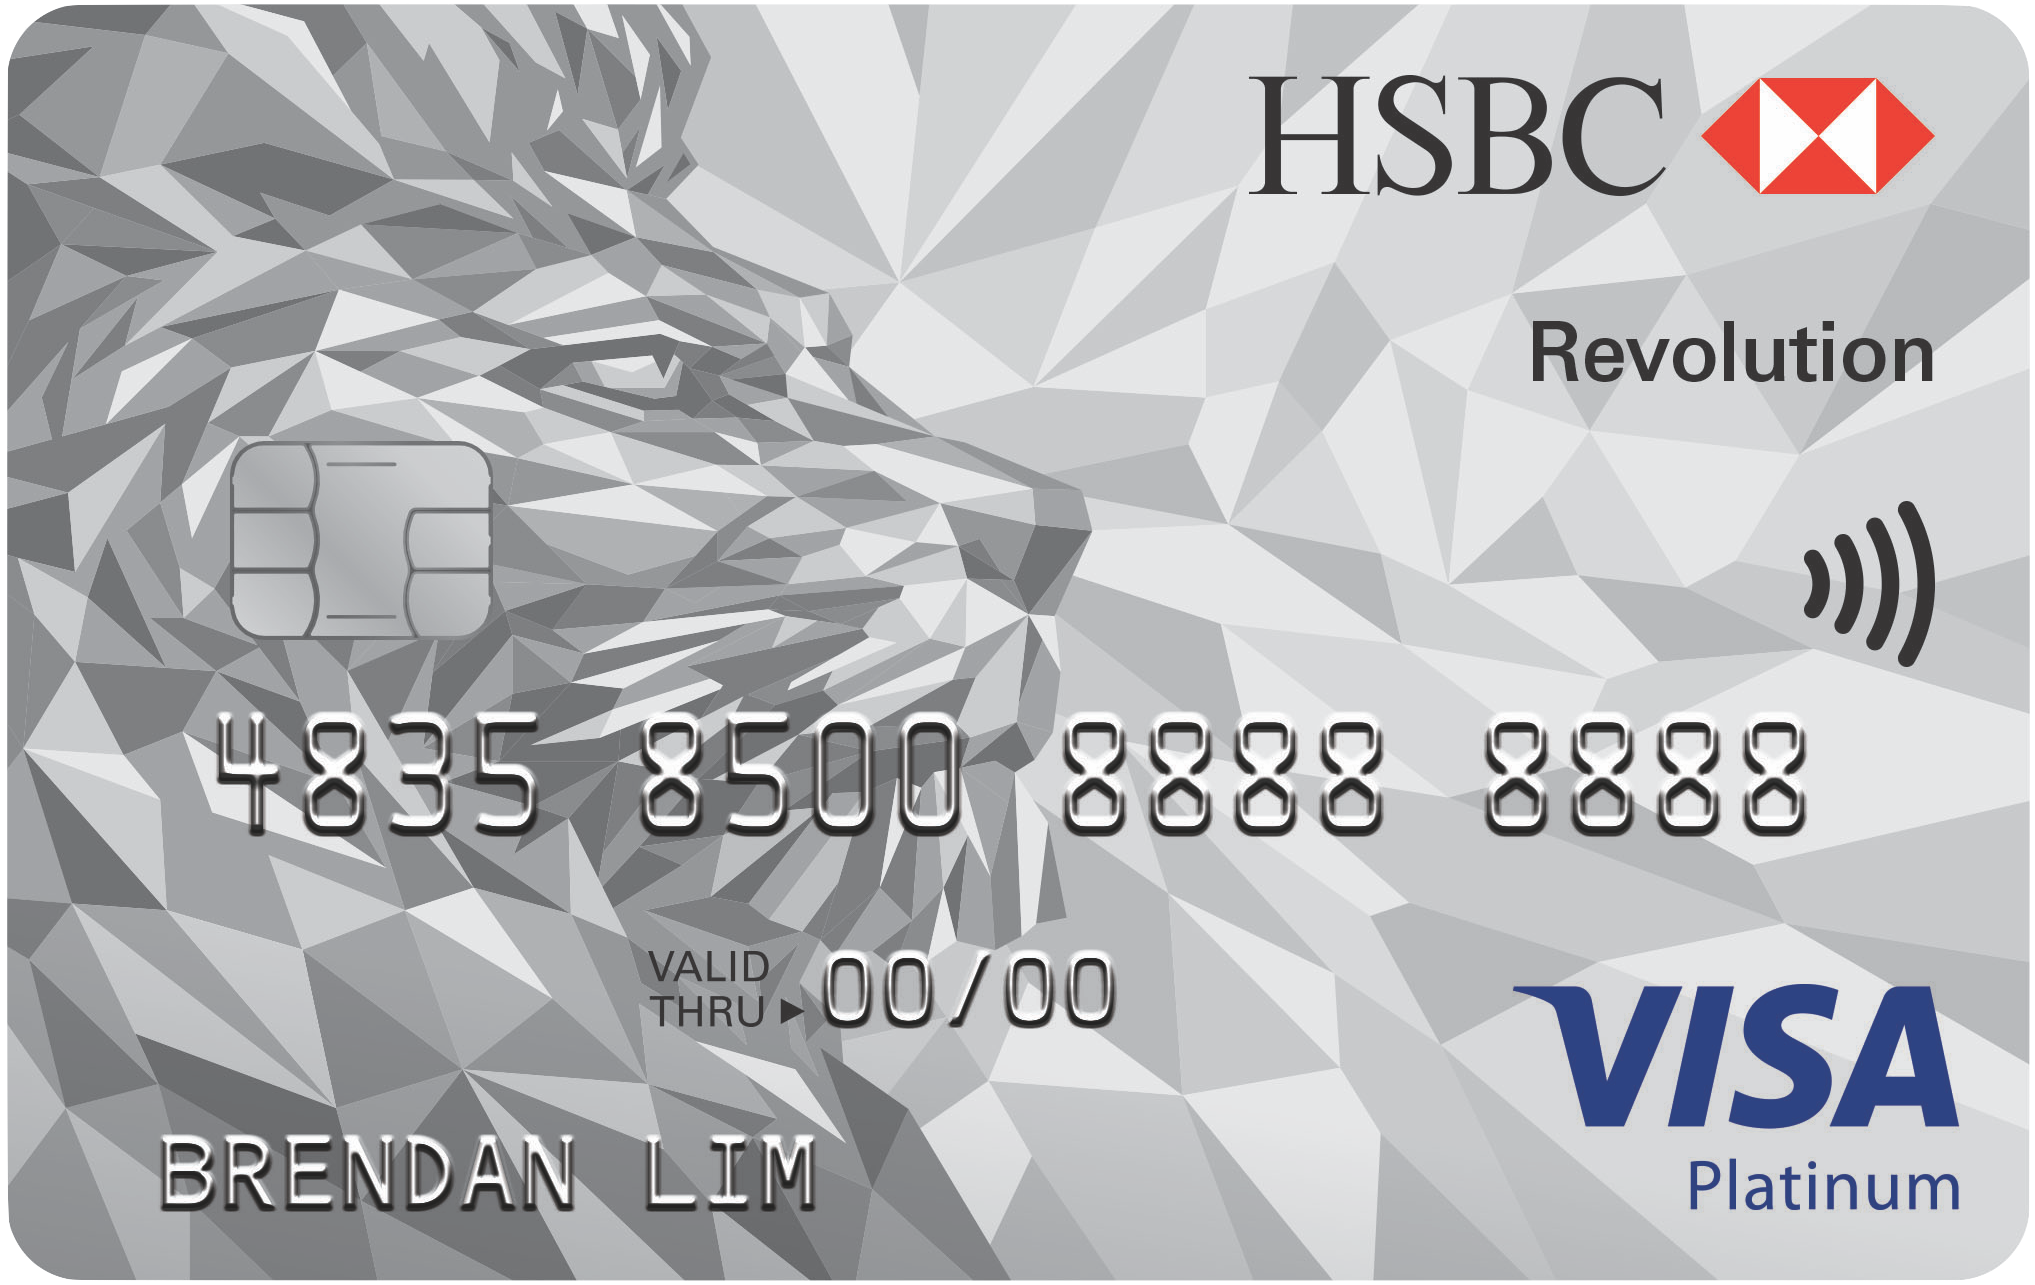 HSBC Revolution Credit Card | SingSaver